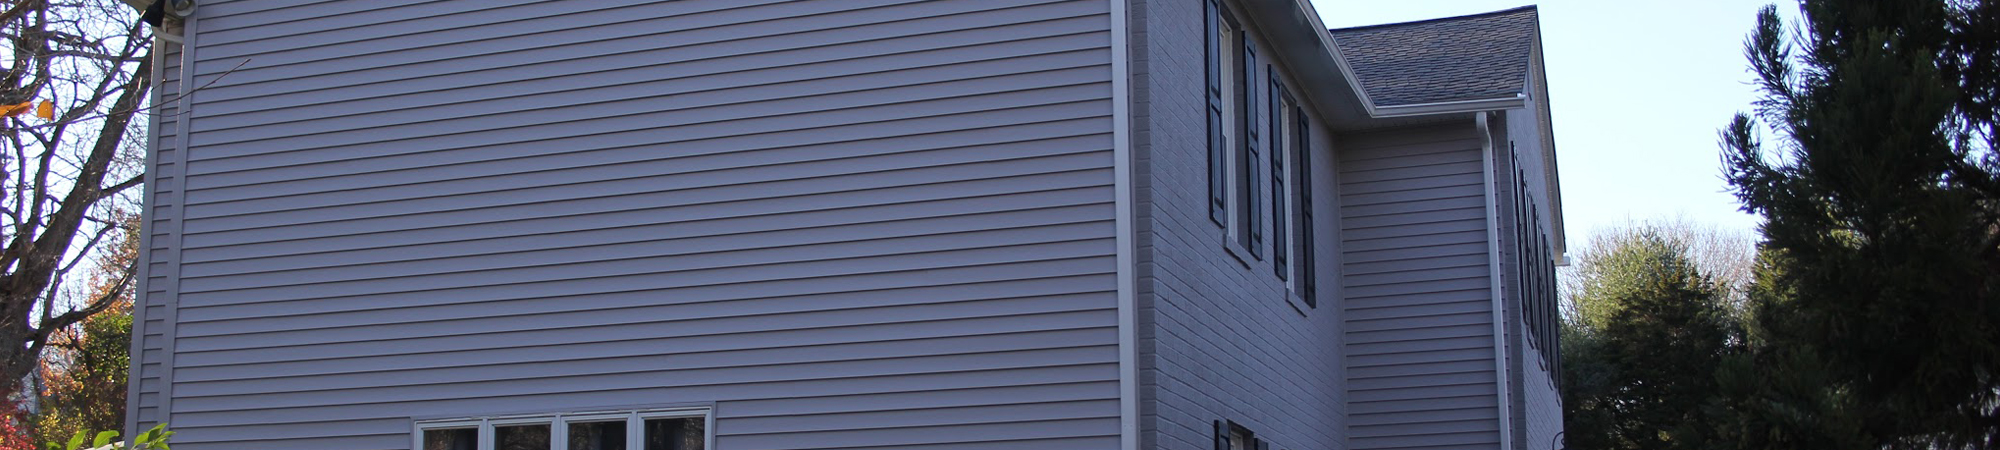 Siding Contractor Maryland Siding Roofing Maryland